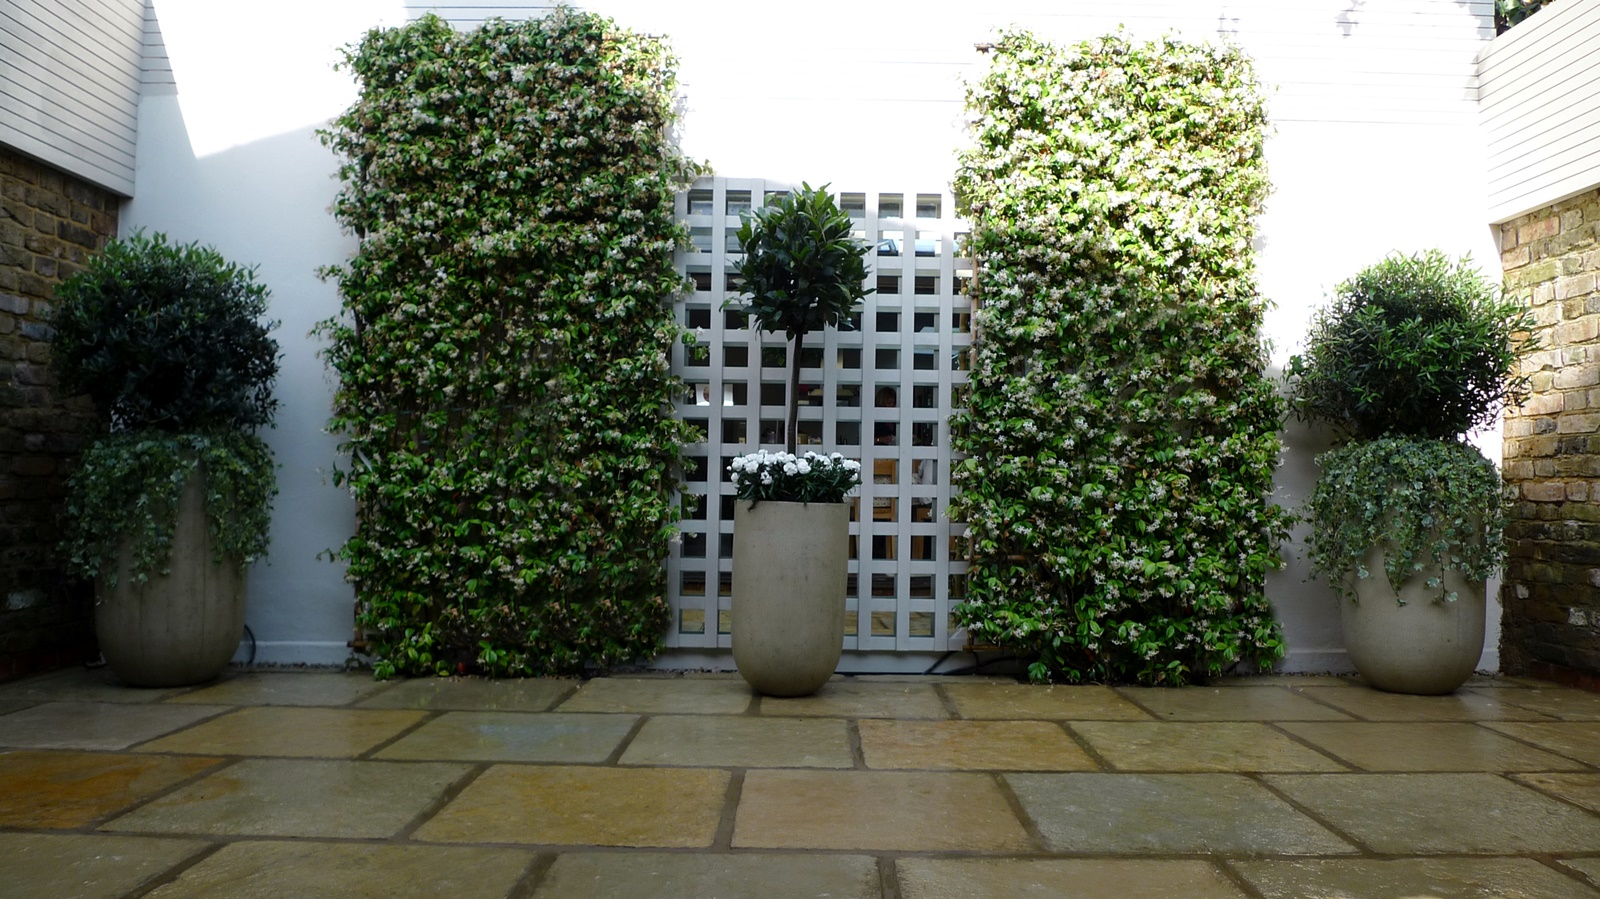 Garden Design Blogs : Courtyard minimalist contemporary garden design and